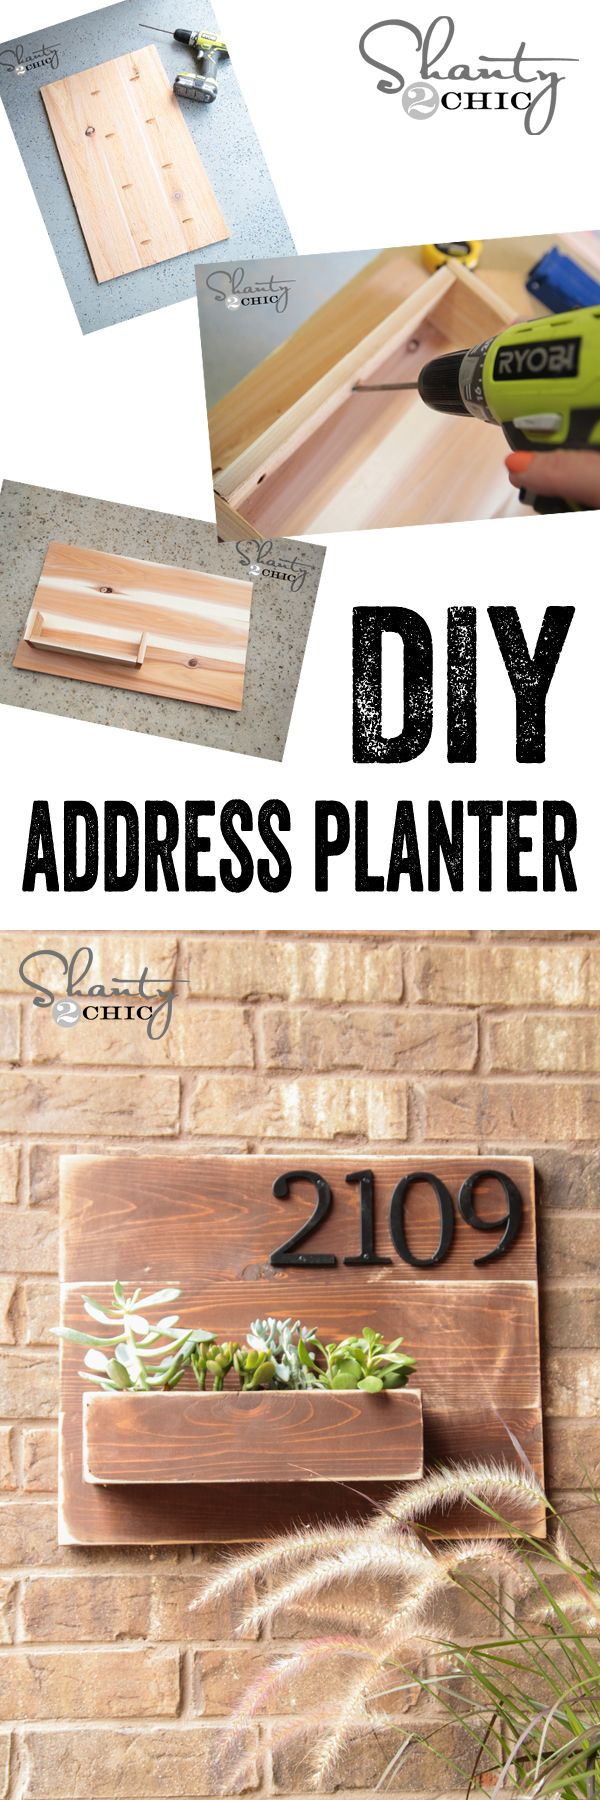 LOVE this wall planter with address numbers.